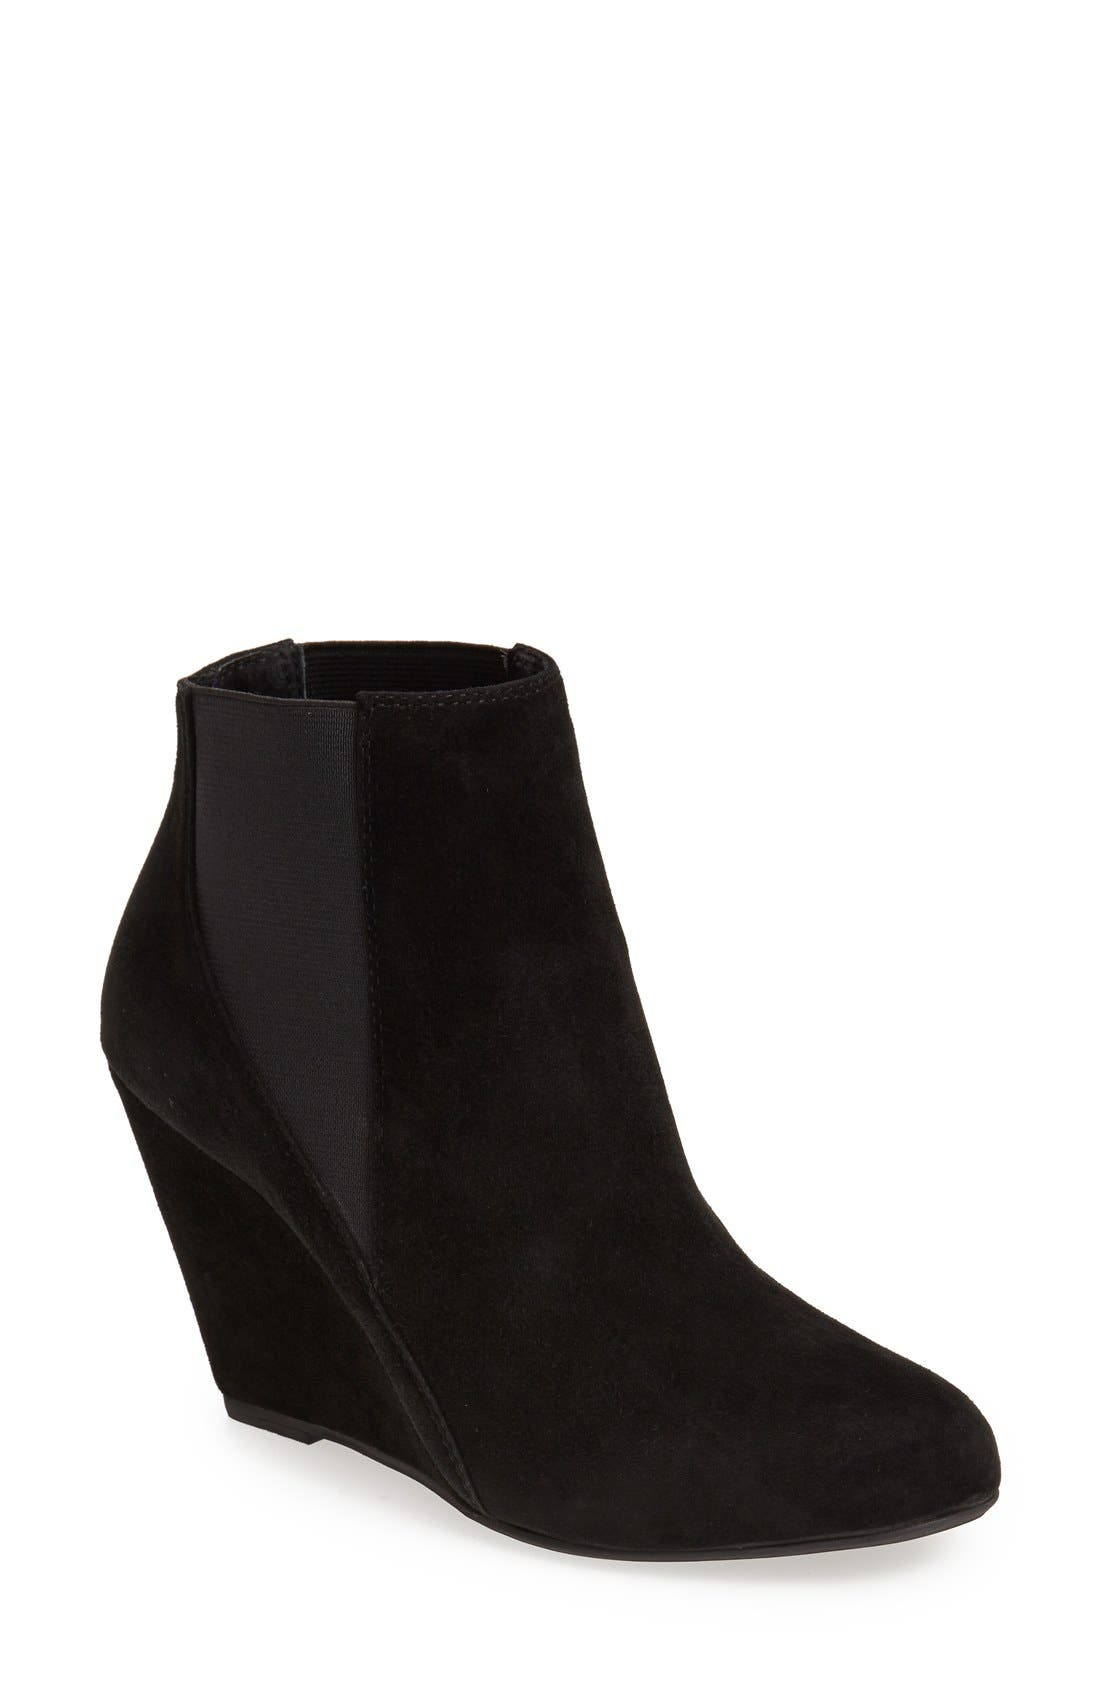 Main Image - Jeffrey Campbell 'Wagner' Suede Chelsea Boot (Women)